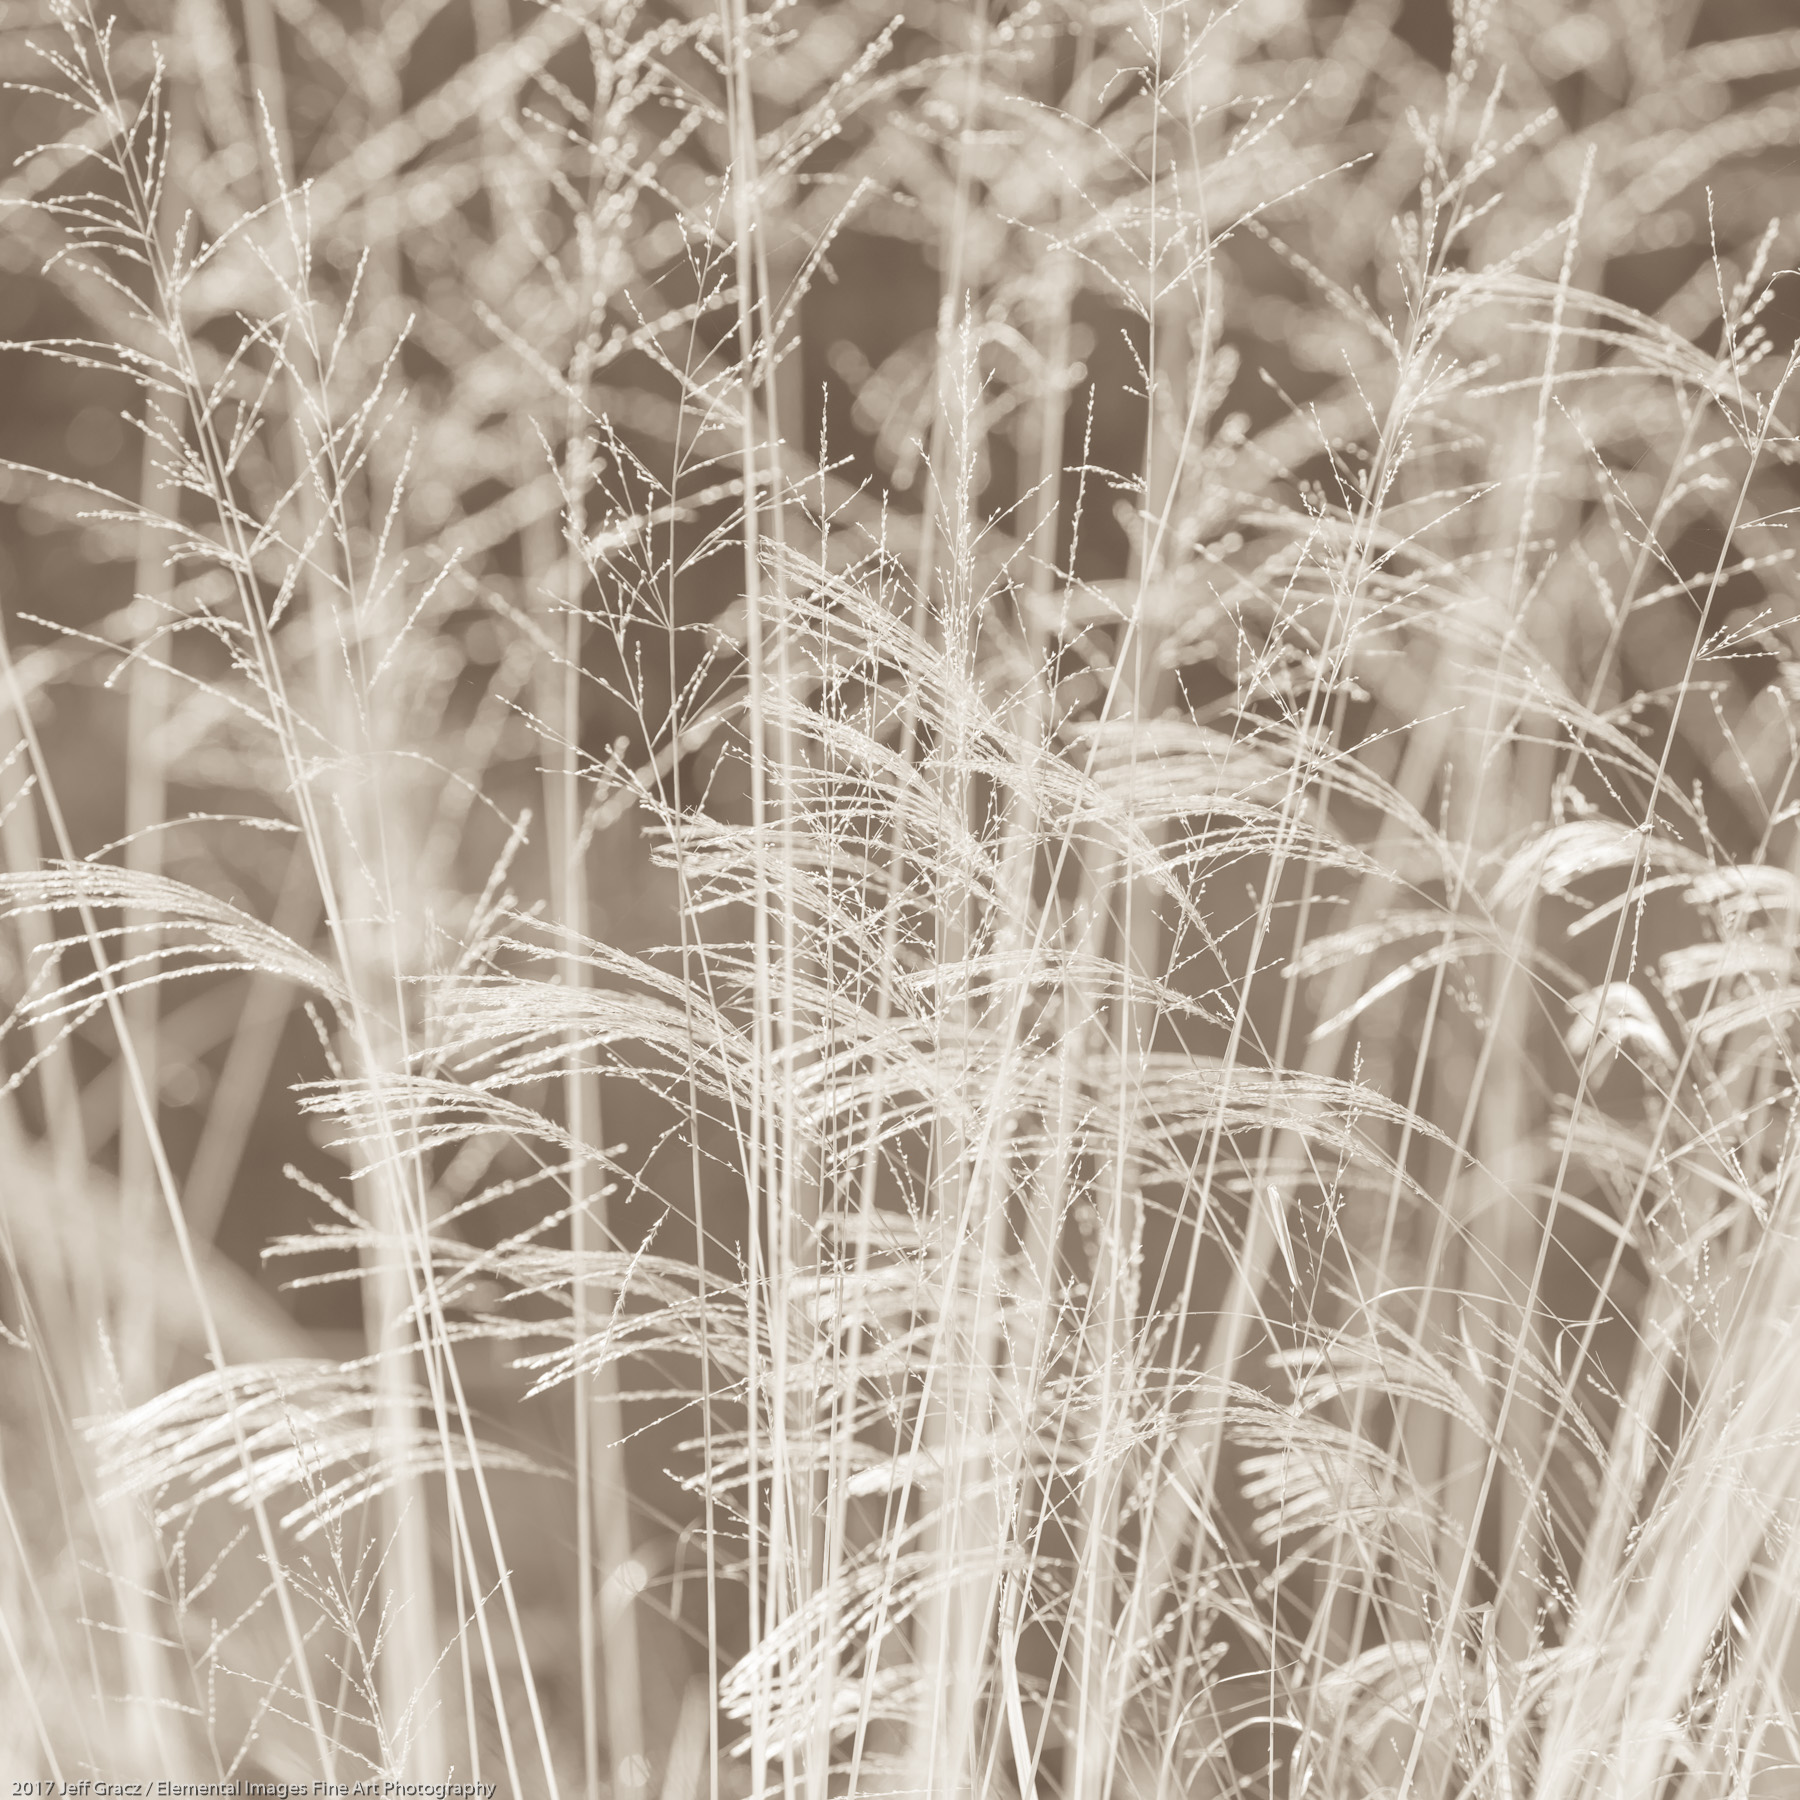 Grasses #151 | Silverton | OR | USA - © 2017 Jeff Gracz / Elemental Images Fine Art Photography - All Rights Reserved Worldwide